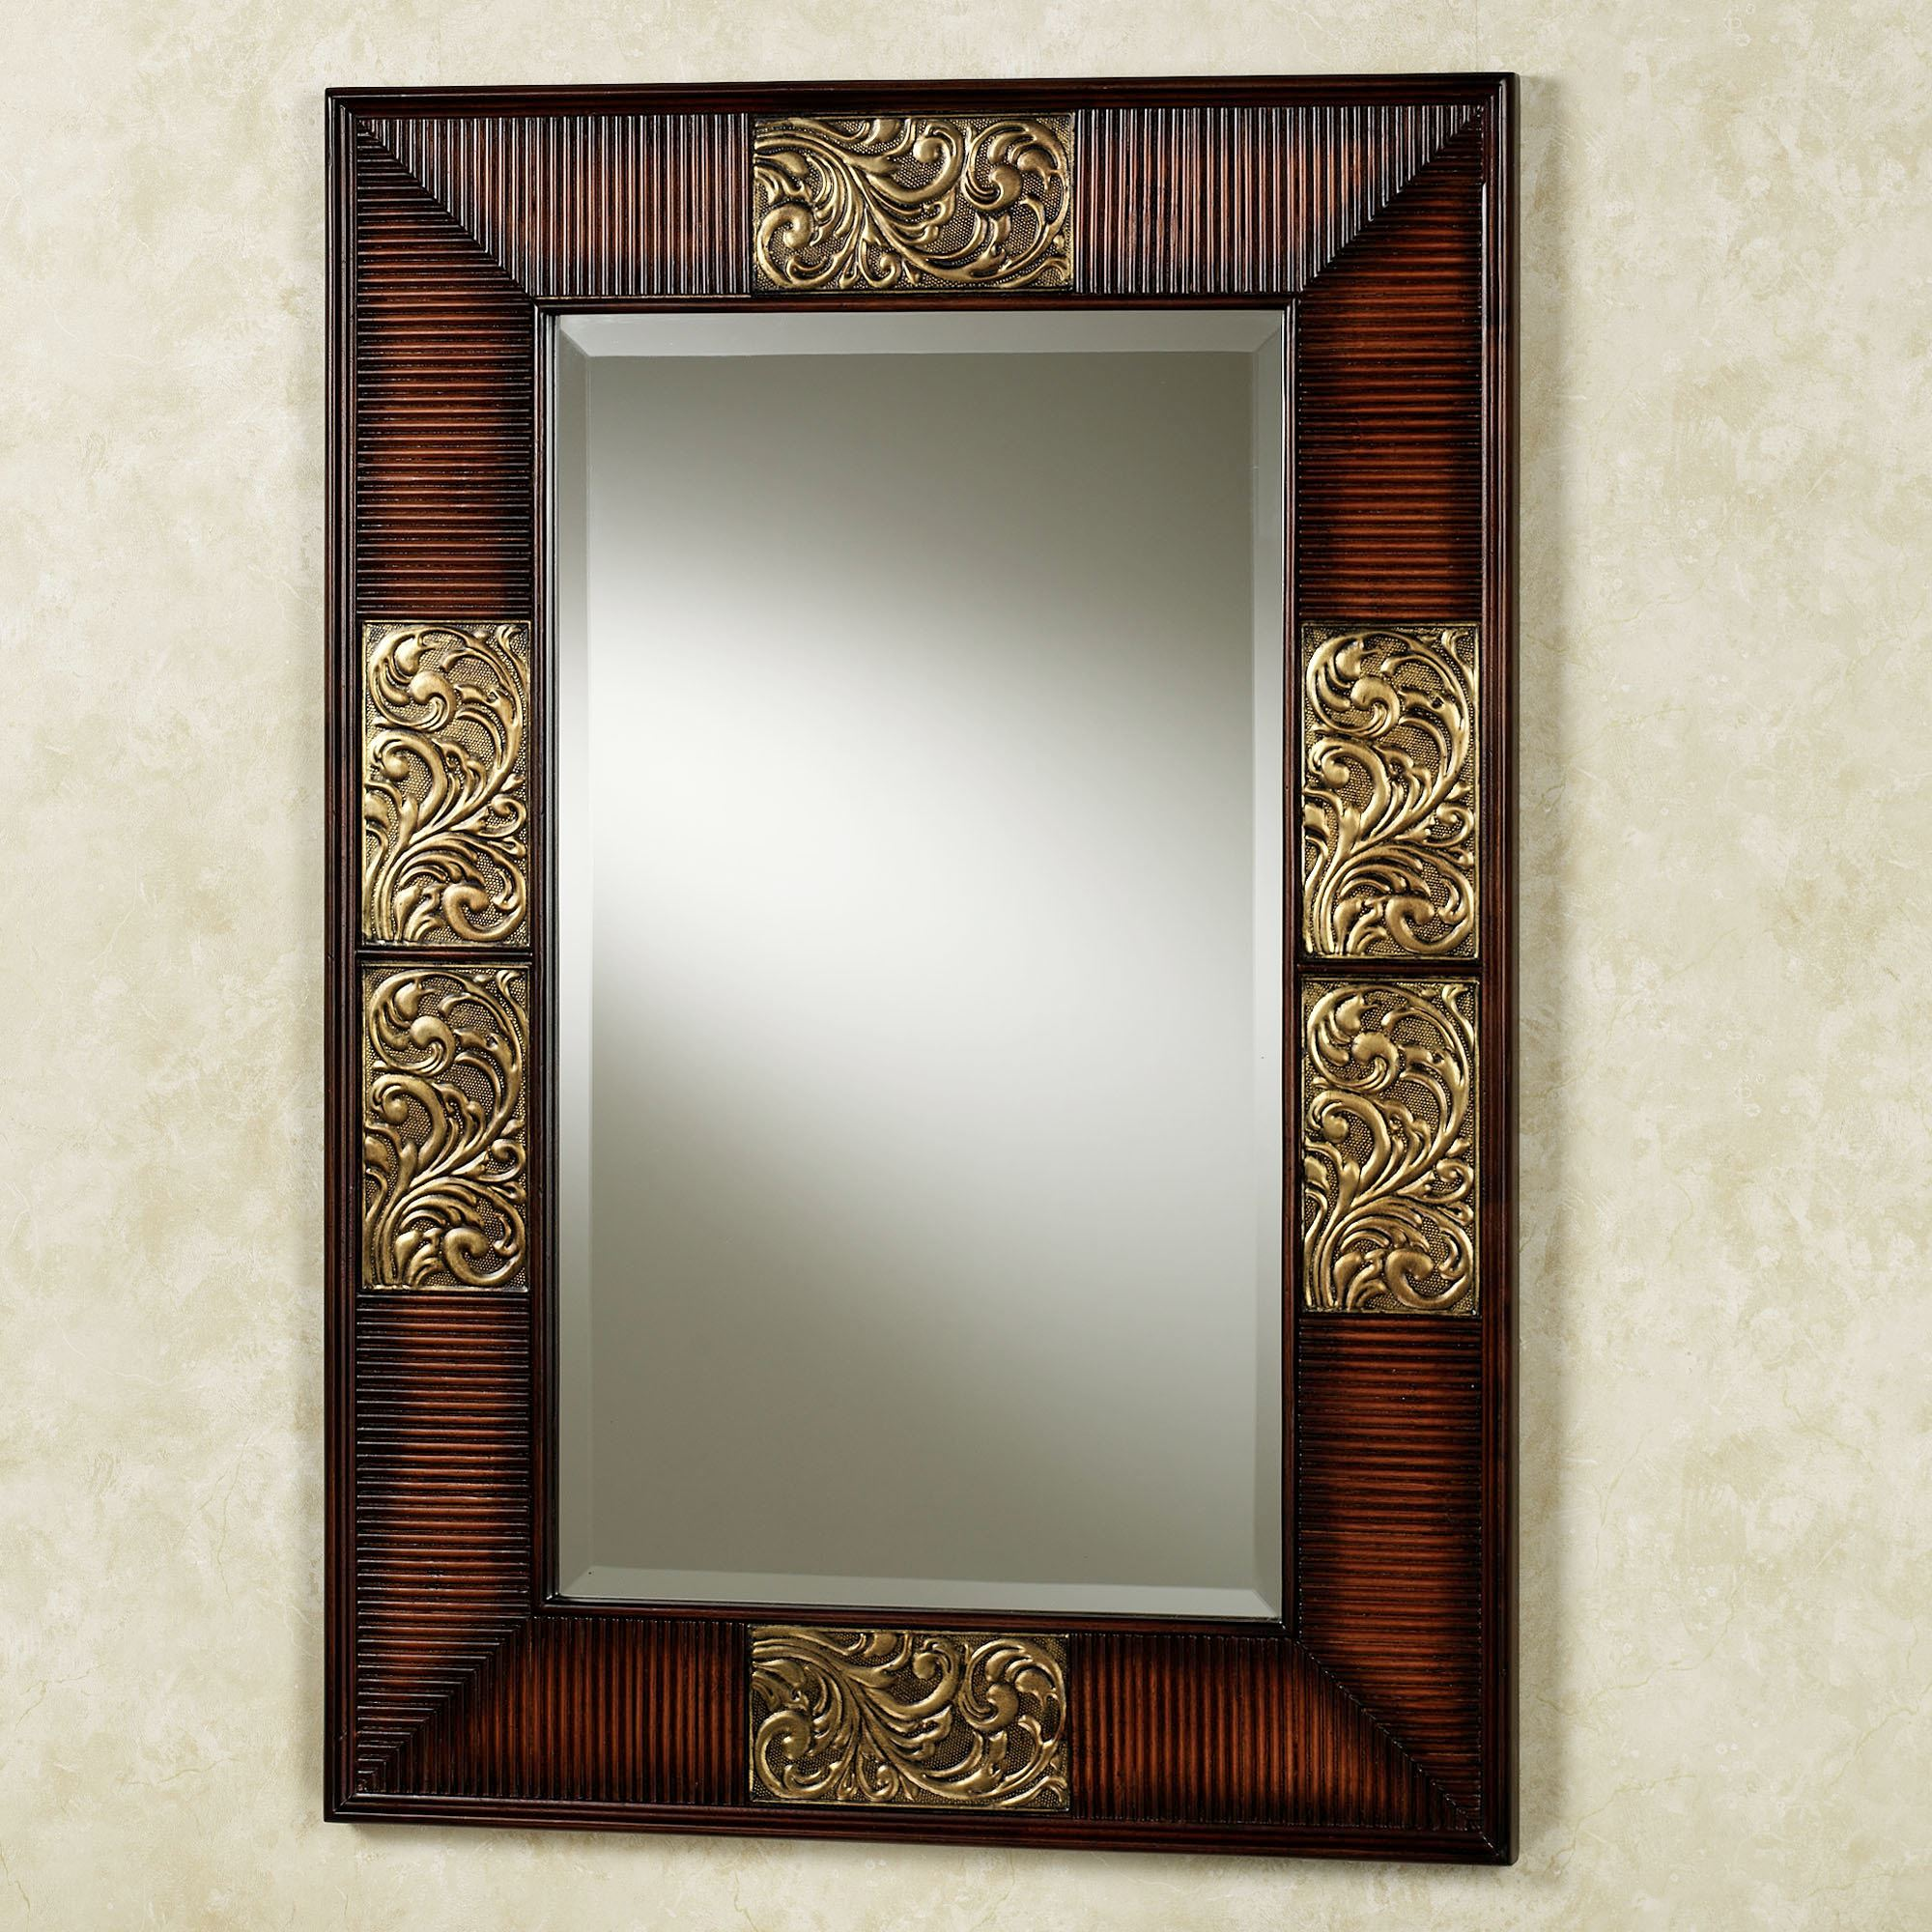 Sarantino wall mirror sarantino asian wall mirror click to expand amipublicfo Gallery